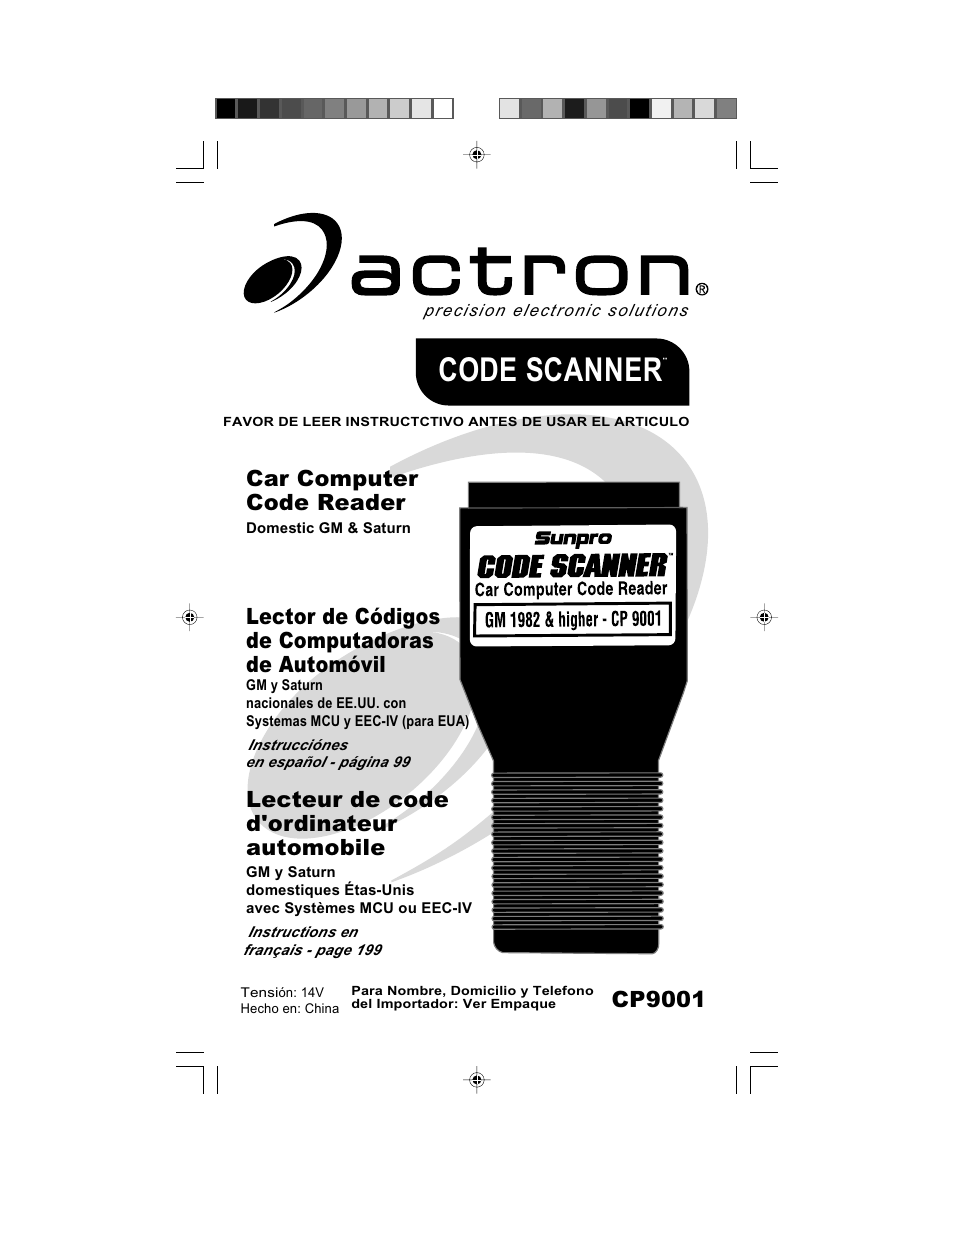 actron gm code scanner cp9001 user manual 98 pages original mode rh manualsdir com actron user manual actron user manual